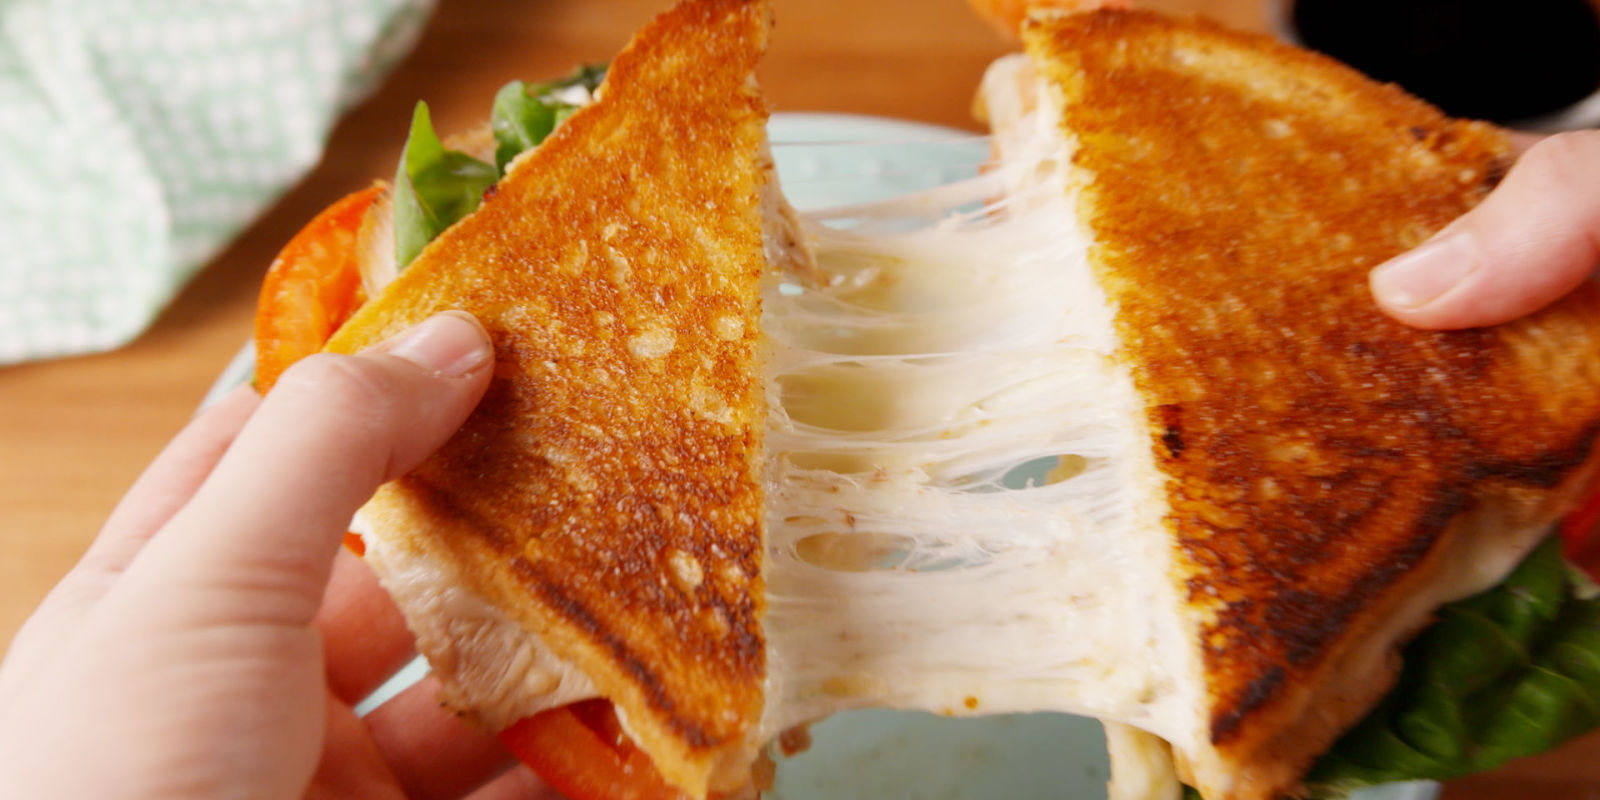 Virgin Mary grilled cheese sold for 28,000 - US news